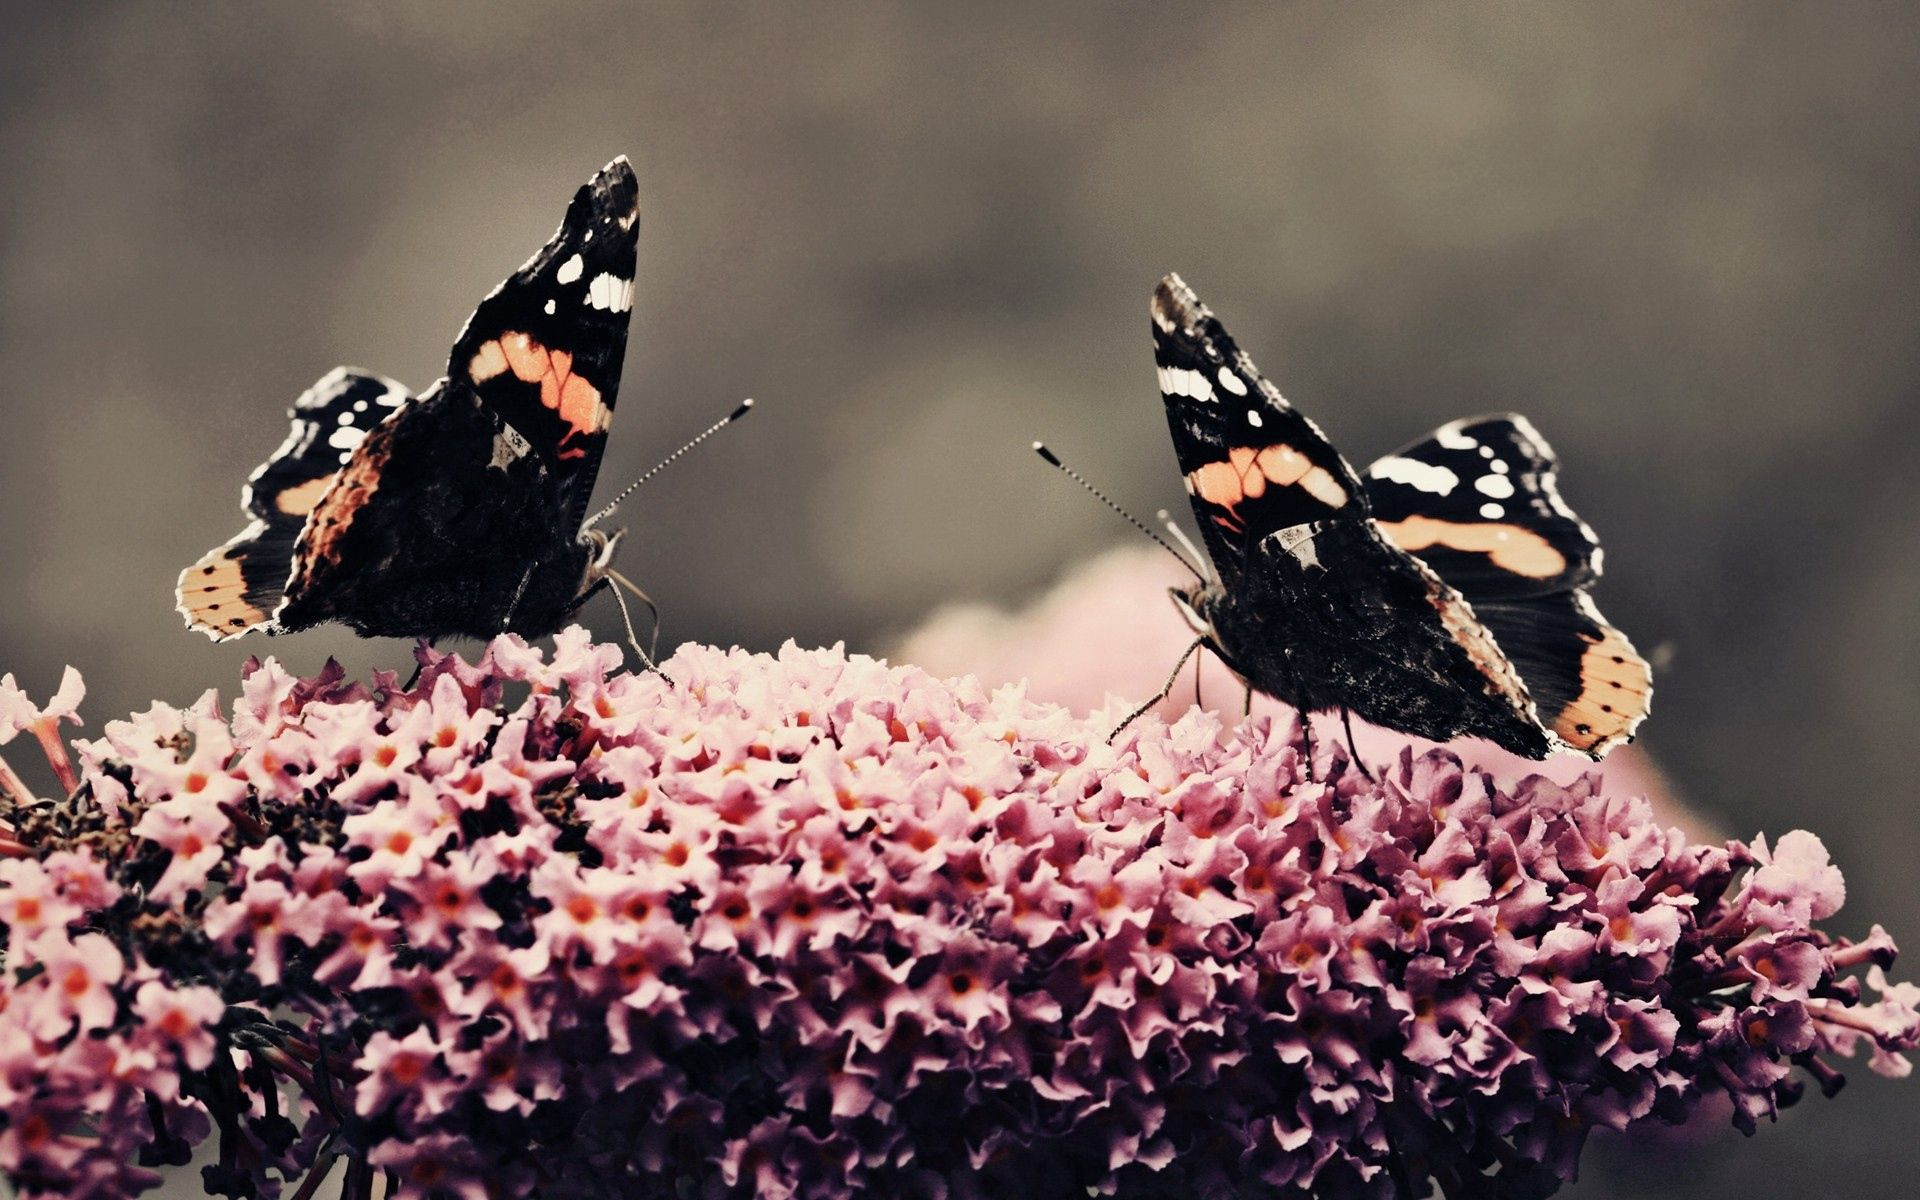 54122 download wallpaper Macro, Butterflies, Surface, Flower, Flight, Insects screensavers and pictures for free